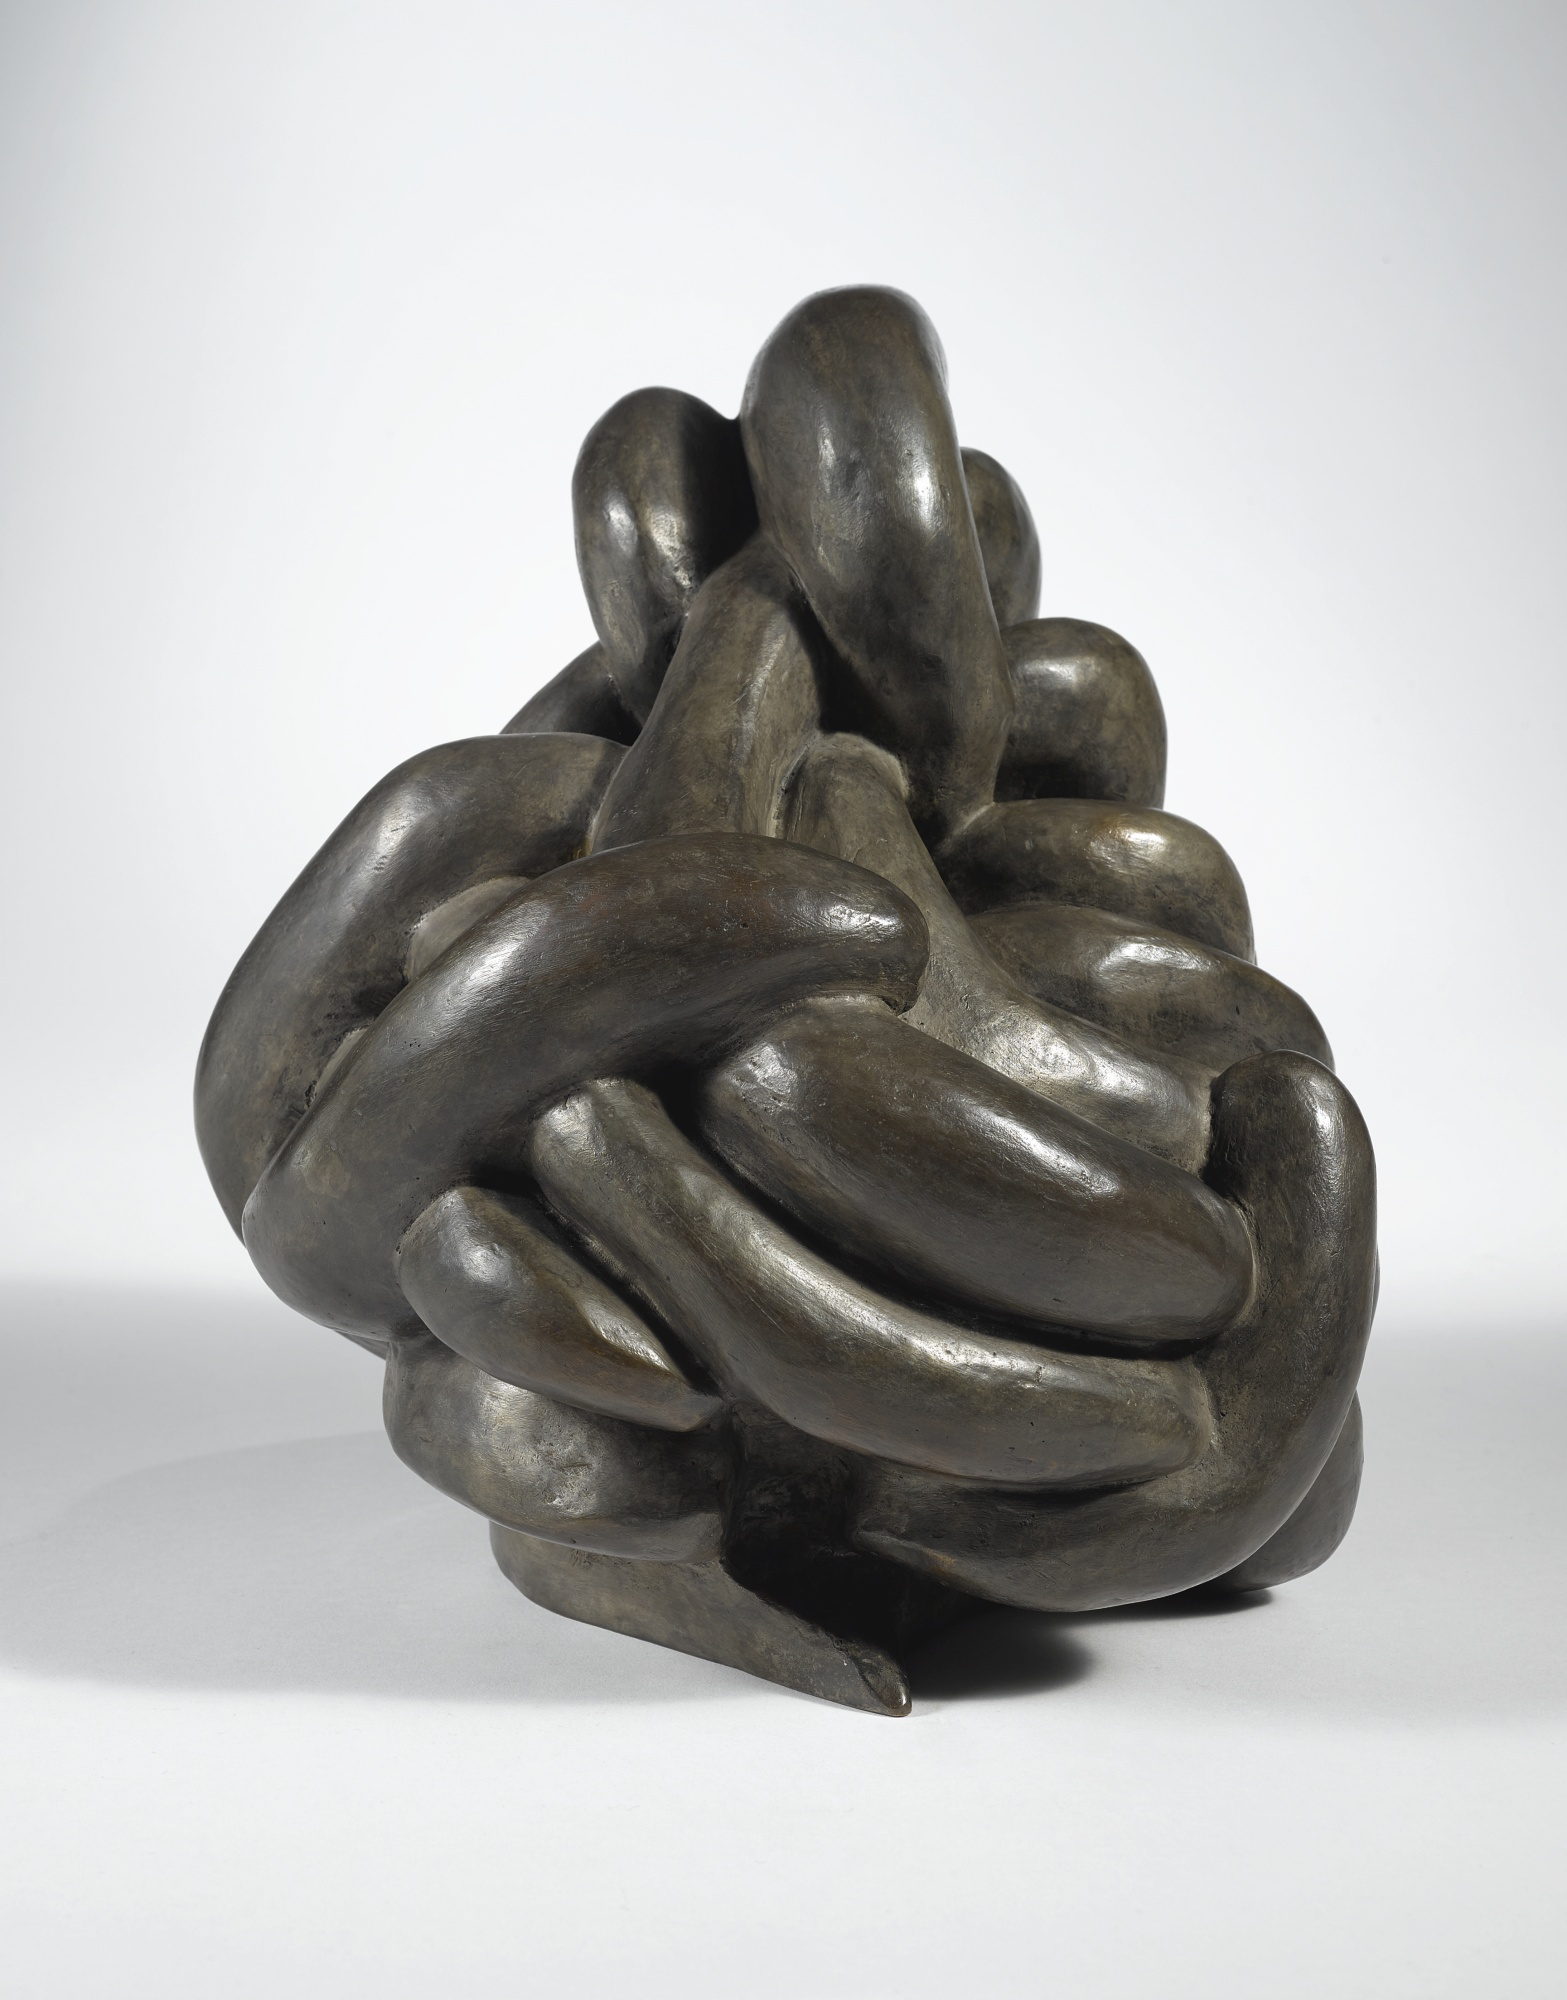 Louise Bourgeois-Clutching-1999